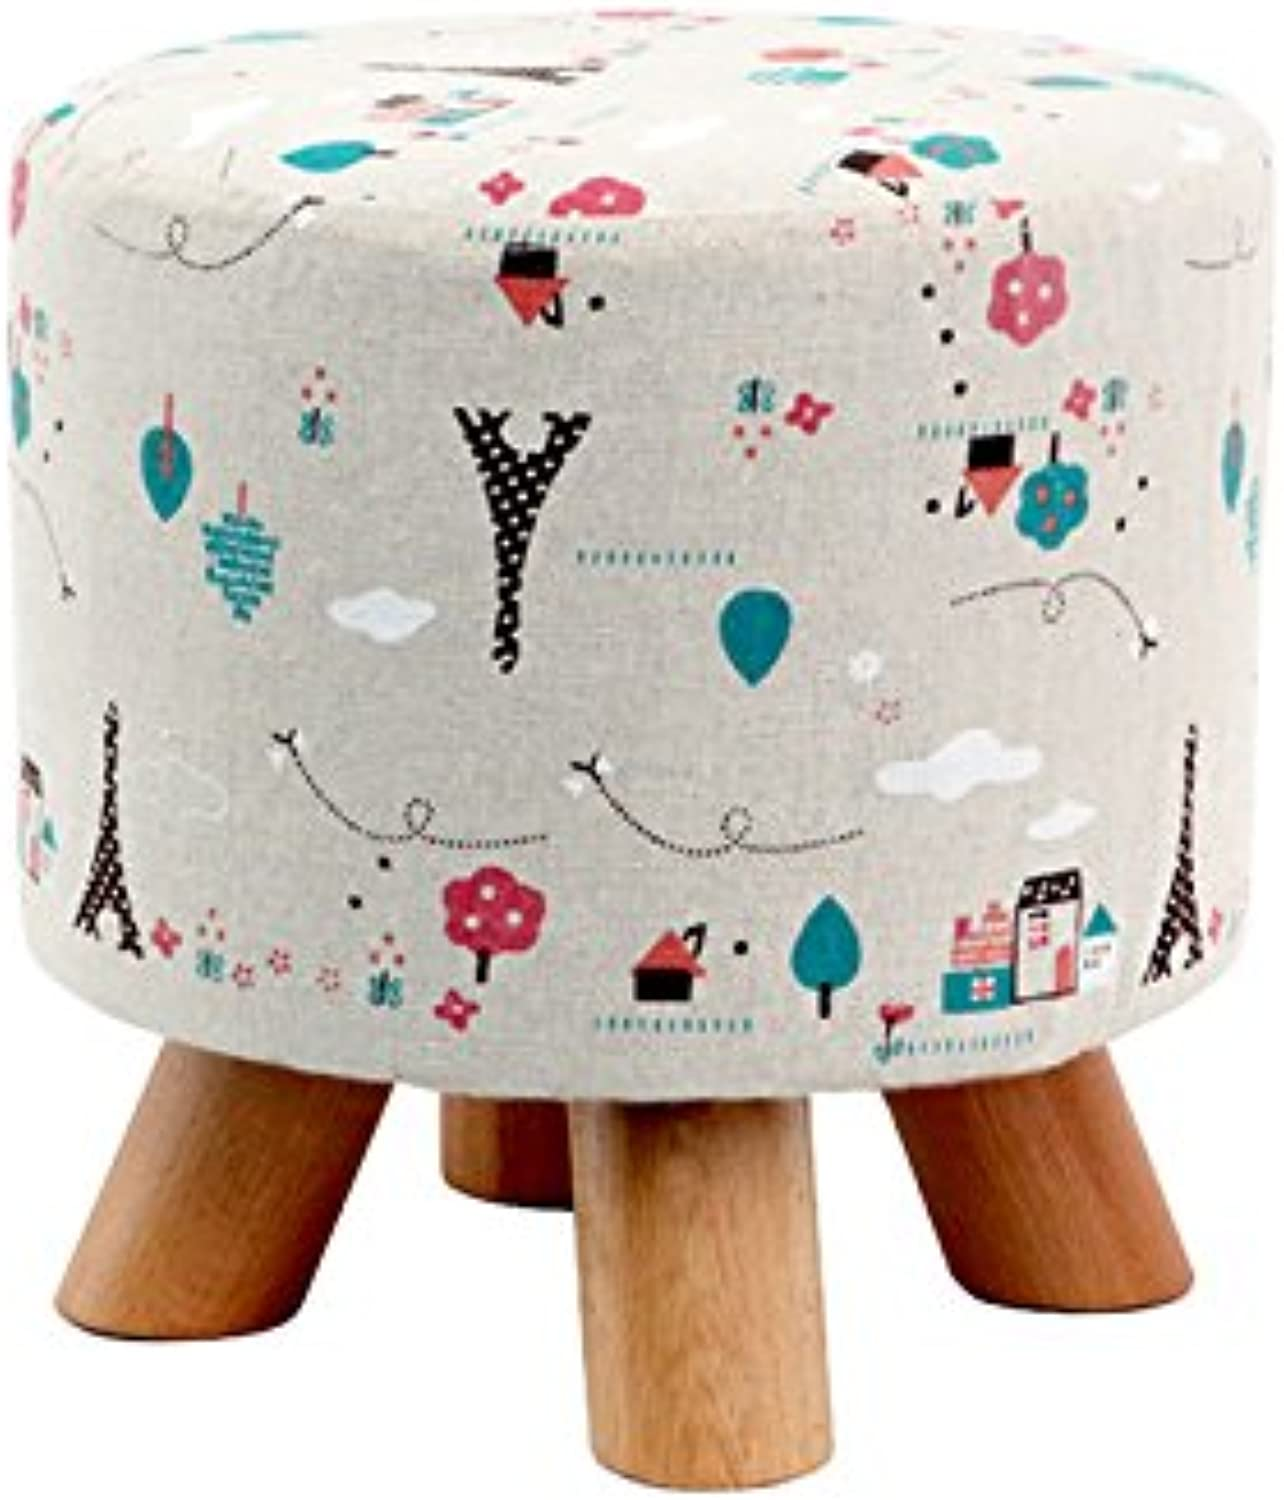 Dana Carrie Stool Fashion on a Low stool Solid Wood Creative Adult Round stool Home Fabric Sofa Chair Small Chair, a Bench, Four Legs Tower